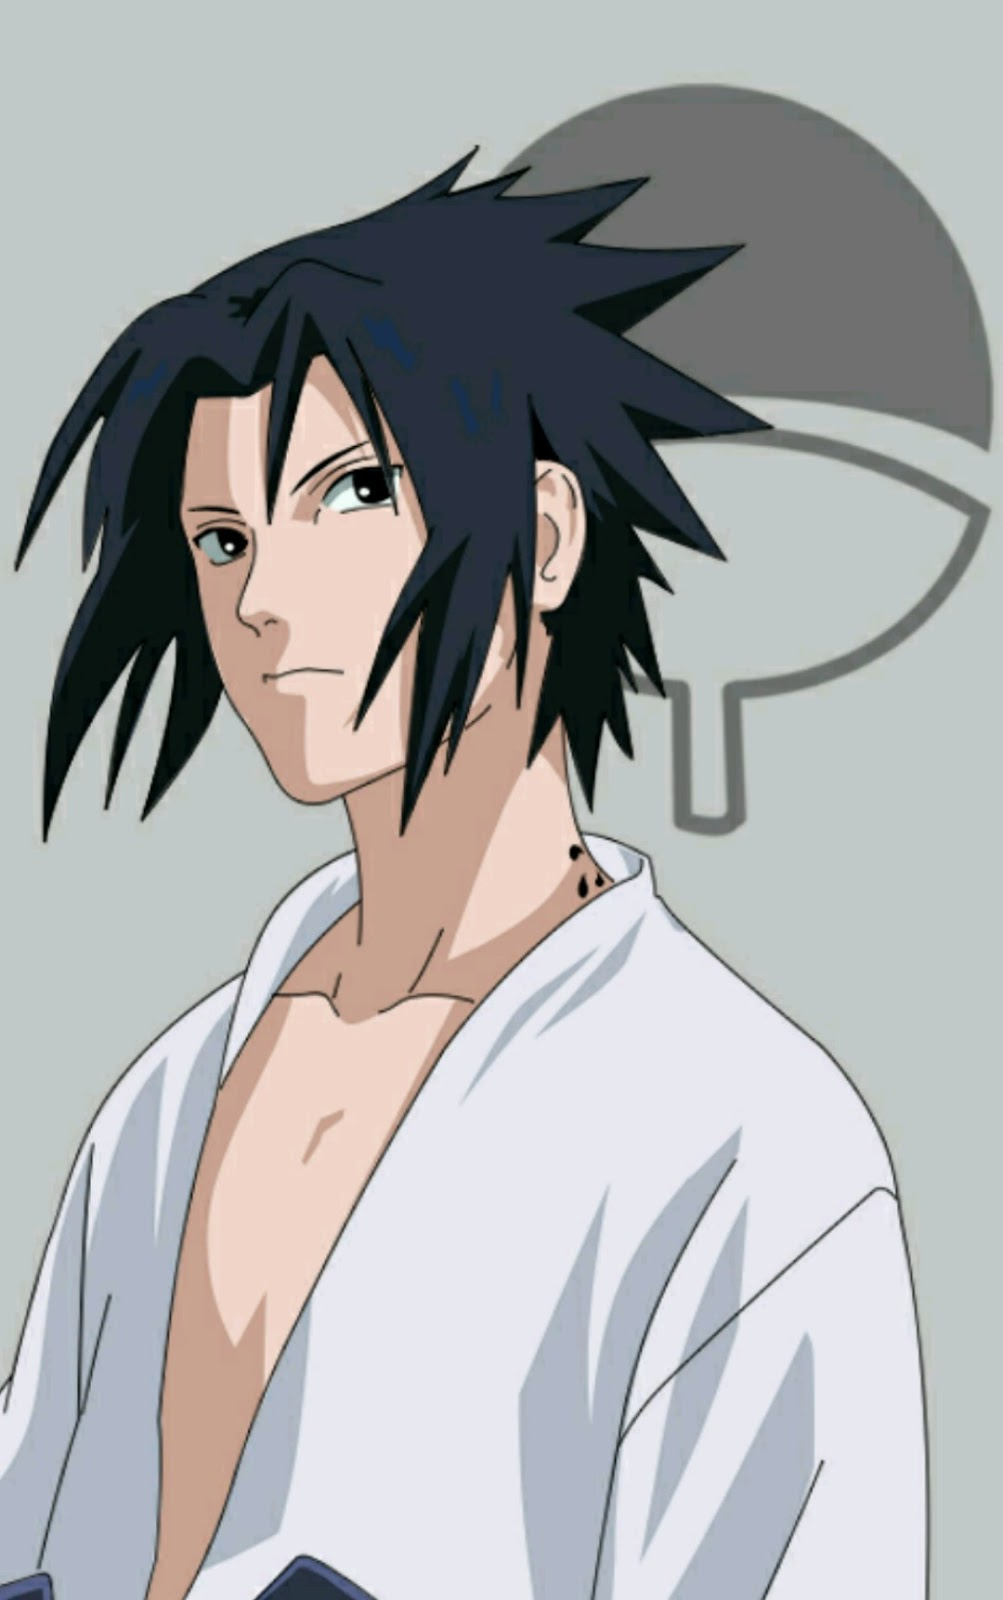 2. Download wallpaper uchiha sasuke vektor untuk android dan whatsApp chat